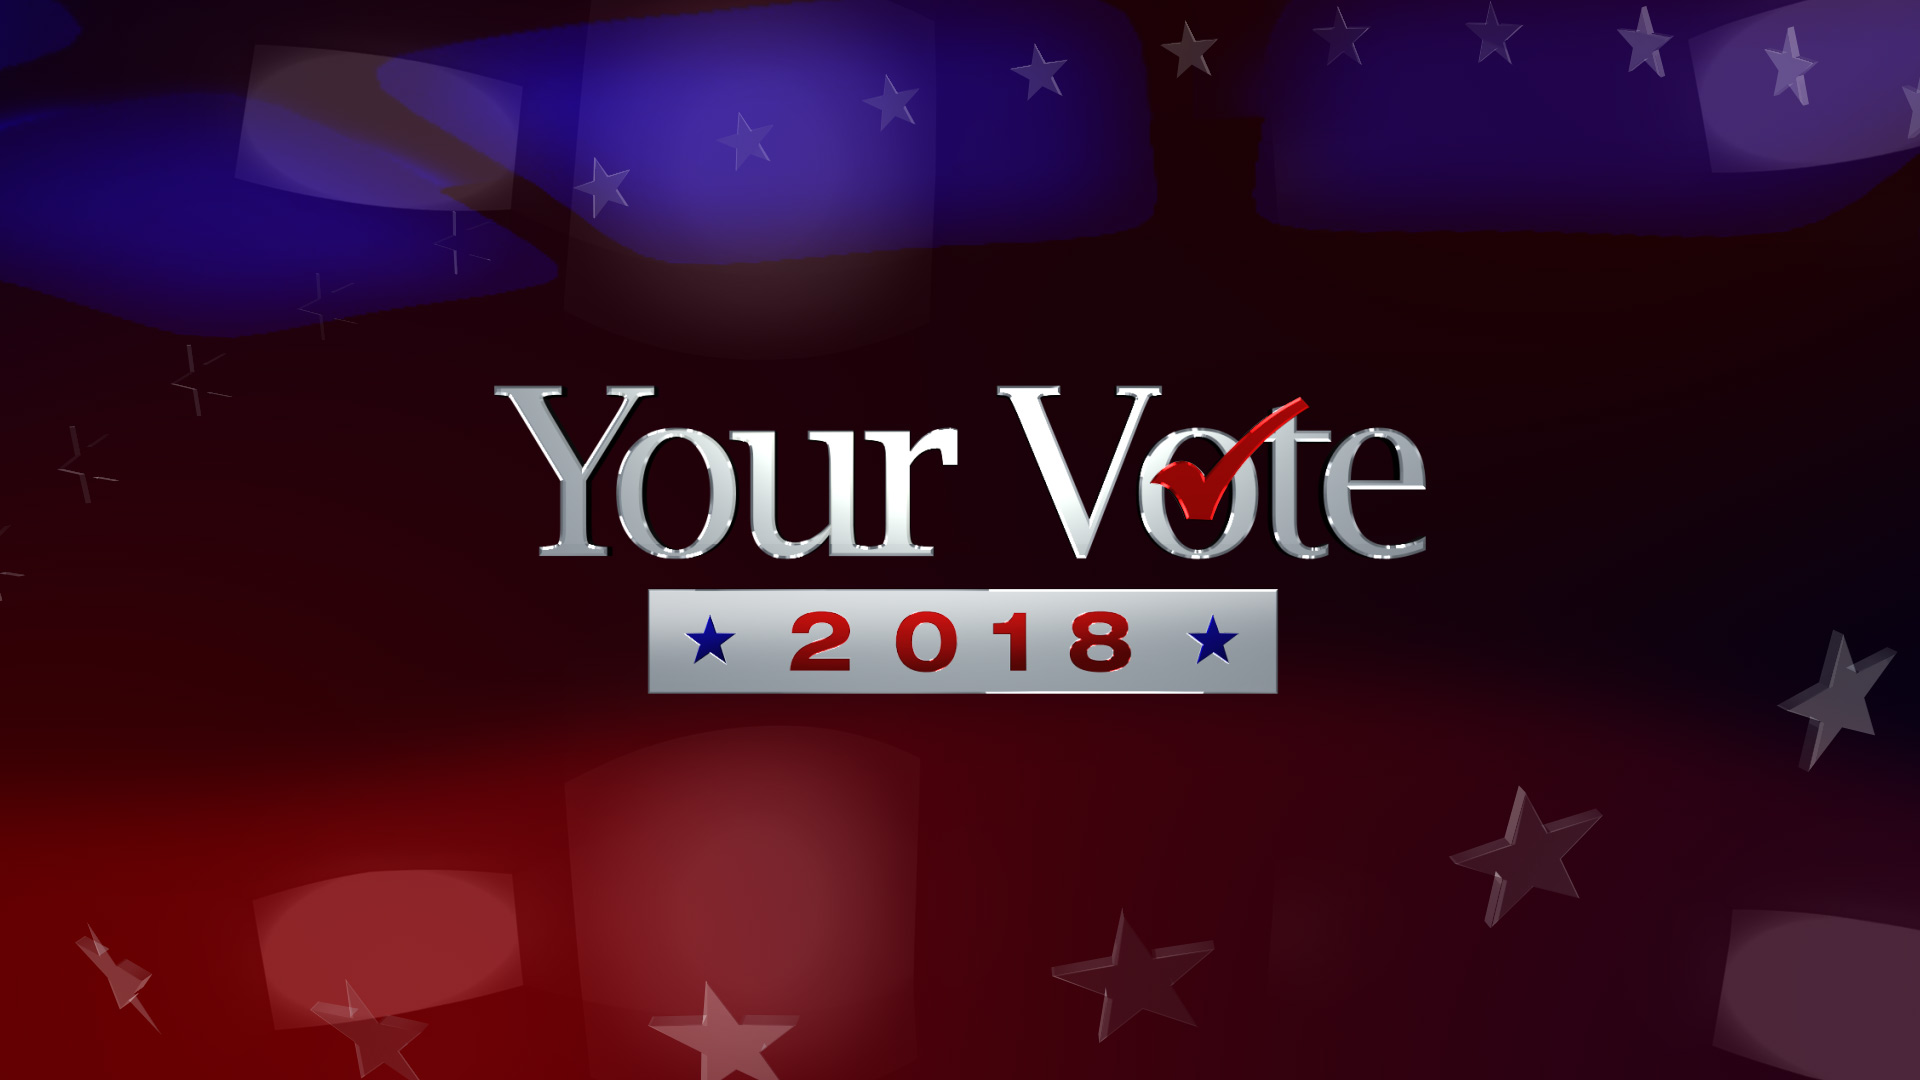 Your Vote 2018 1920x1080 with stars